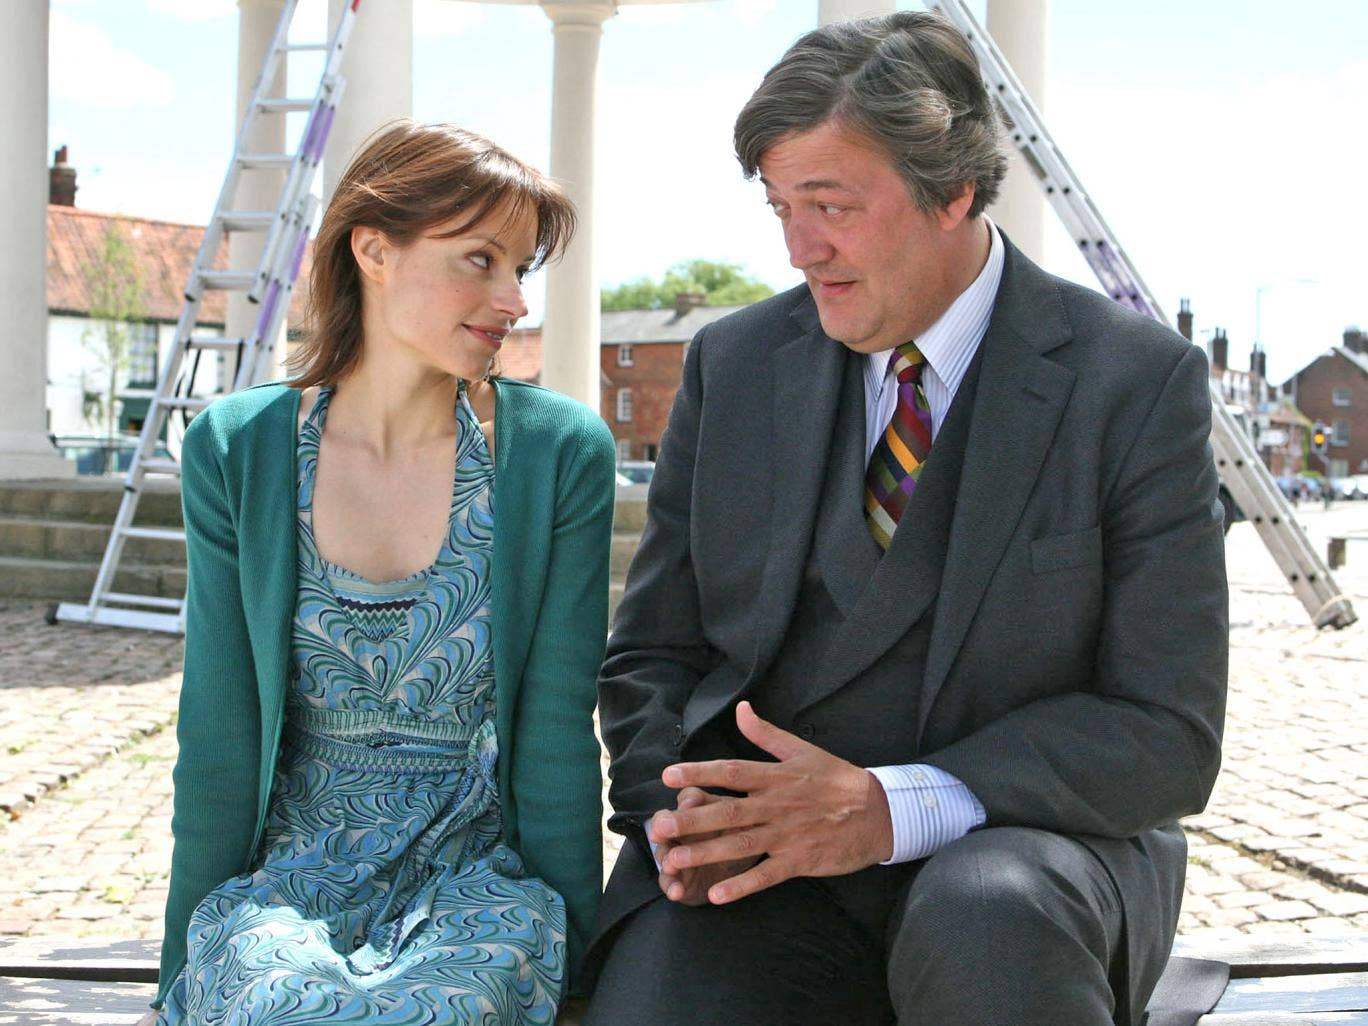 ITV's 'Kingdom' was filmed in Swaffham and starred local lad Stephen Fry